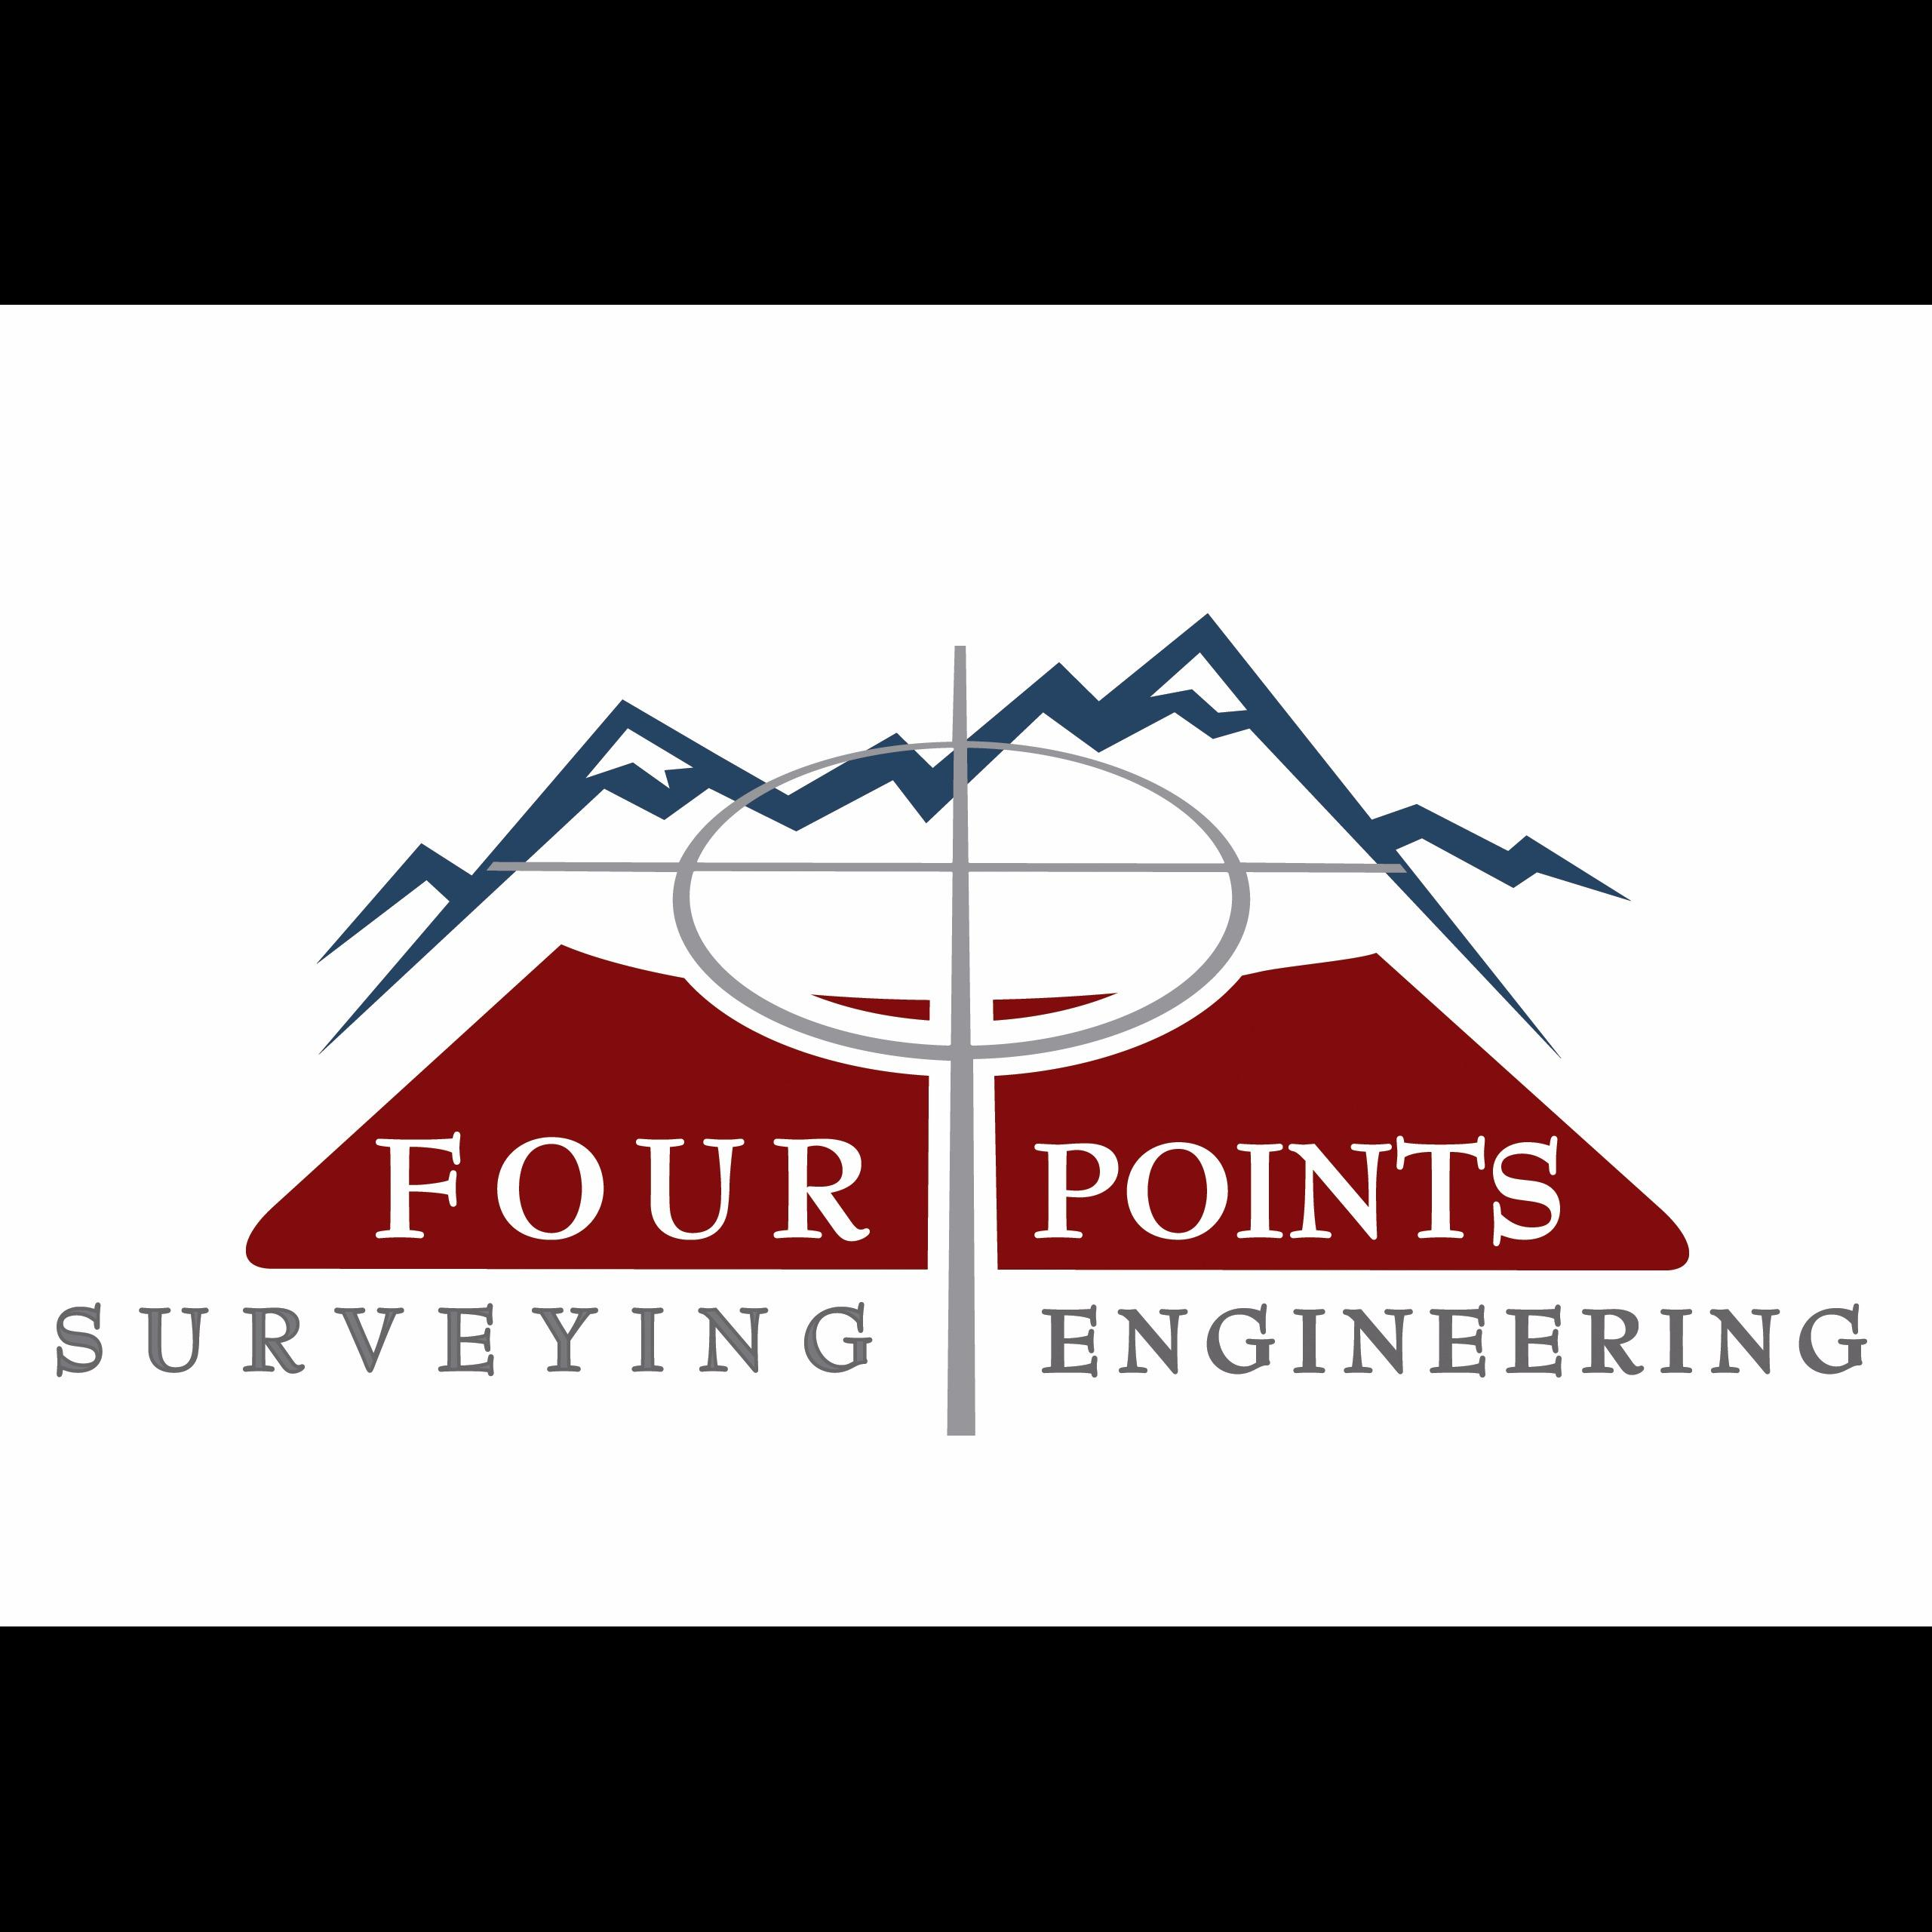 Four Points Surveying & Engineering